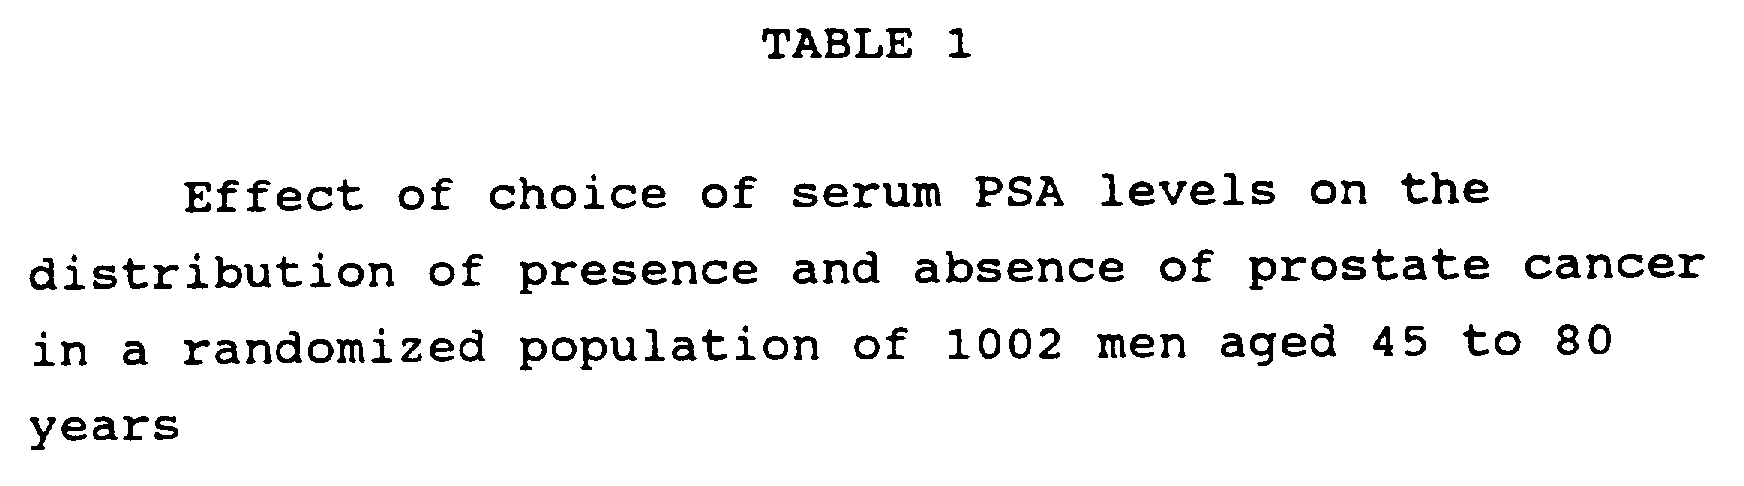 EP0579607B1 - Prescreening of prostate cancer by serum